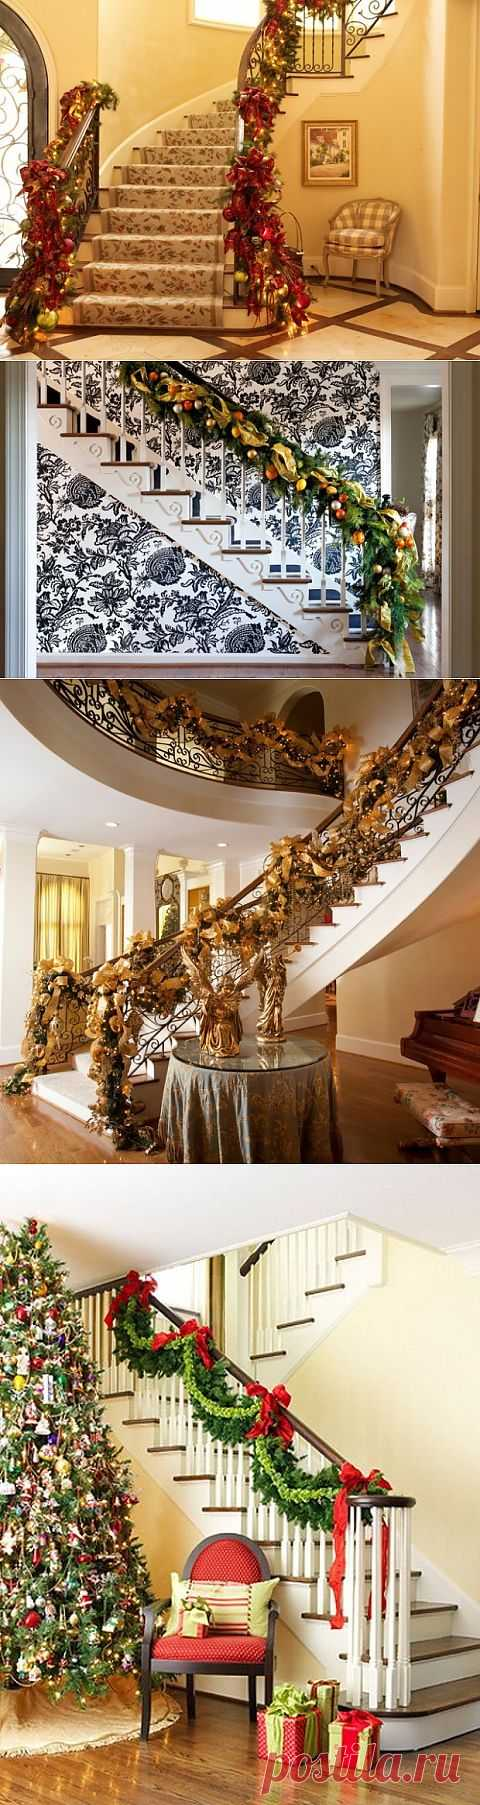 Interior design. Tremendous ideas of decoration of ladders by Christmas.